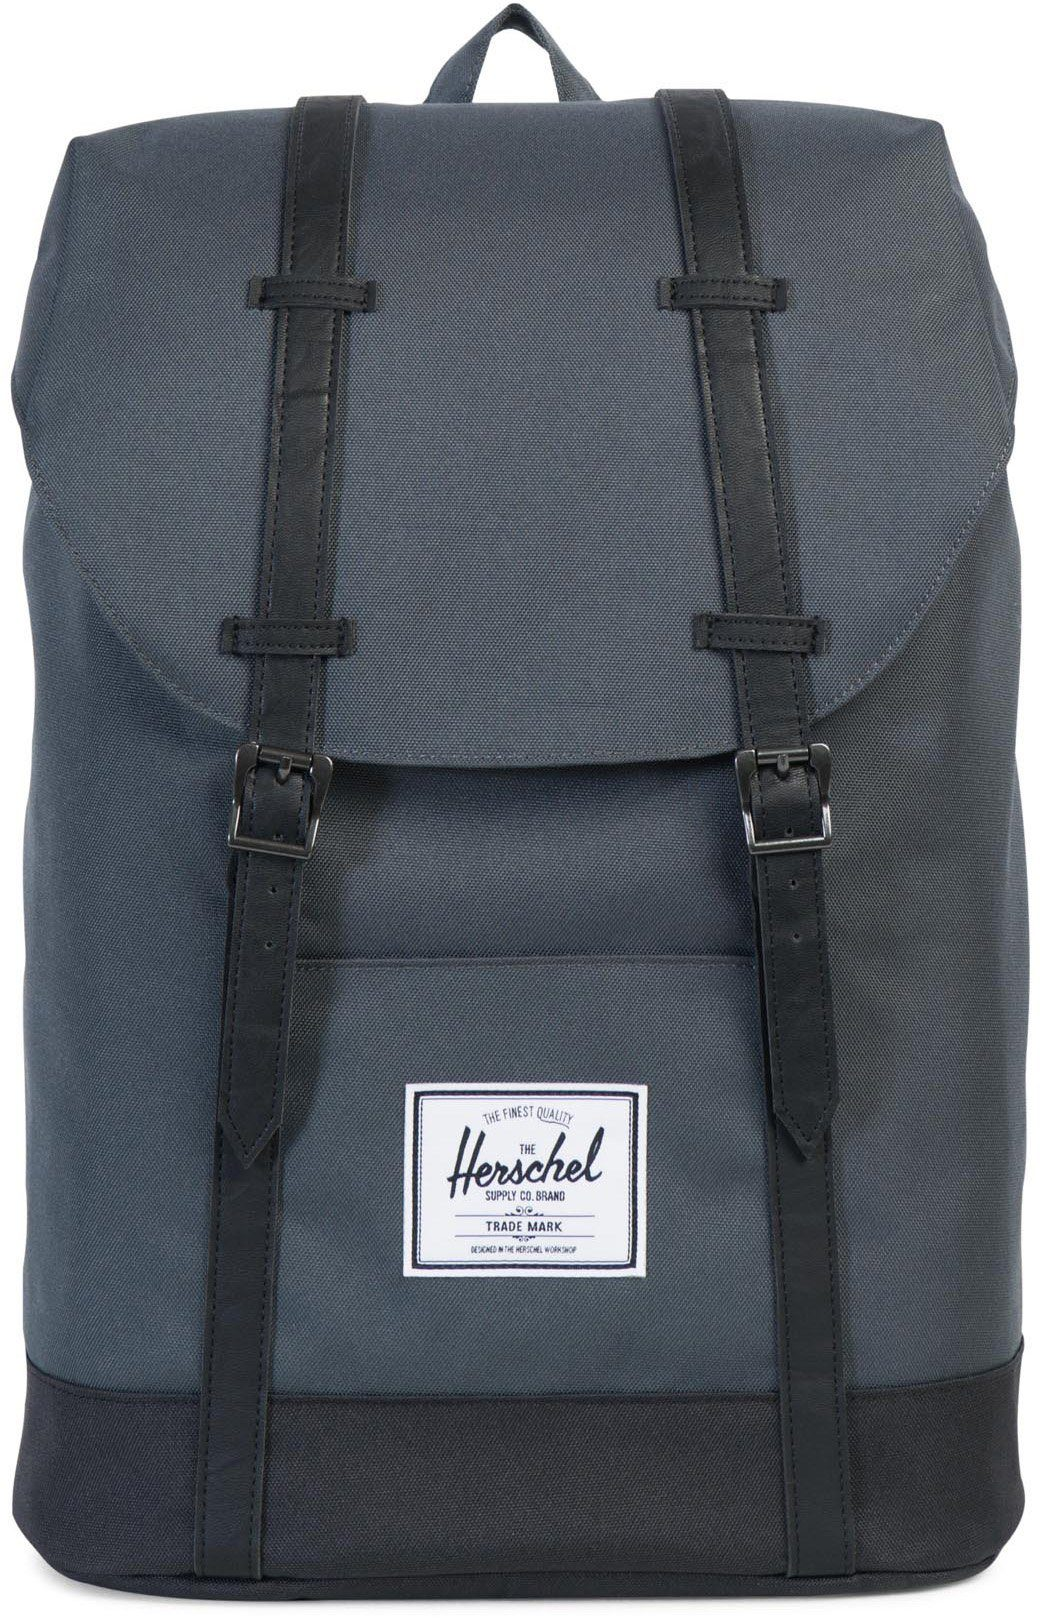 Herschel Rucksack mit Laptopfach, »Retreat Backpack, Dark Shadow/Black«